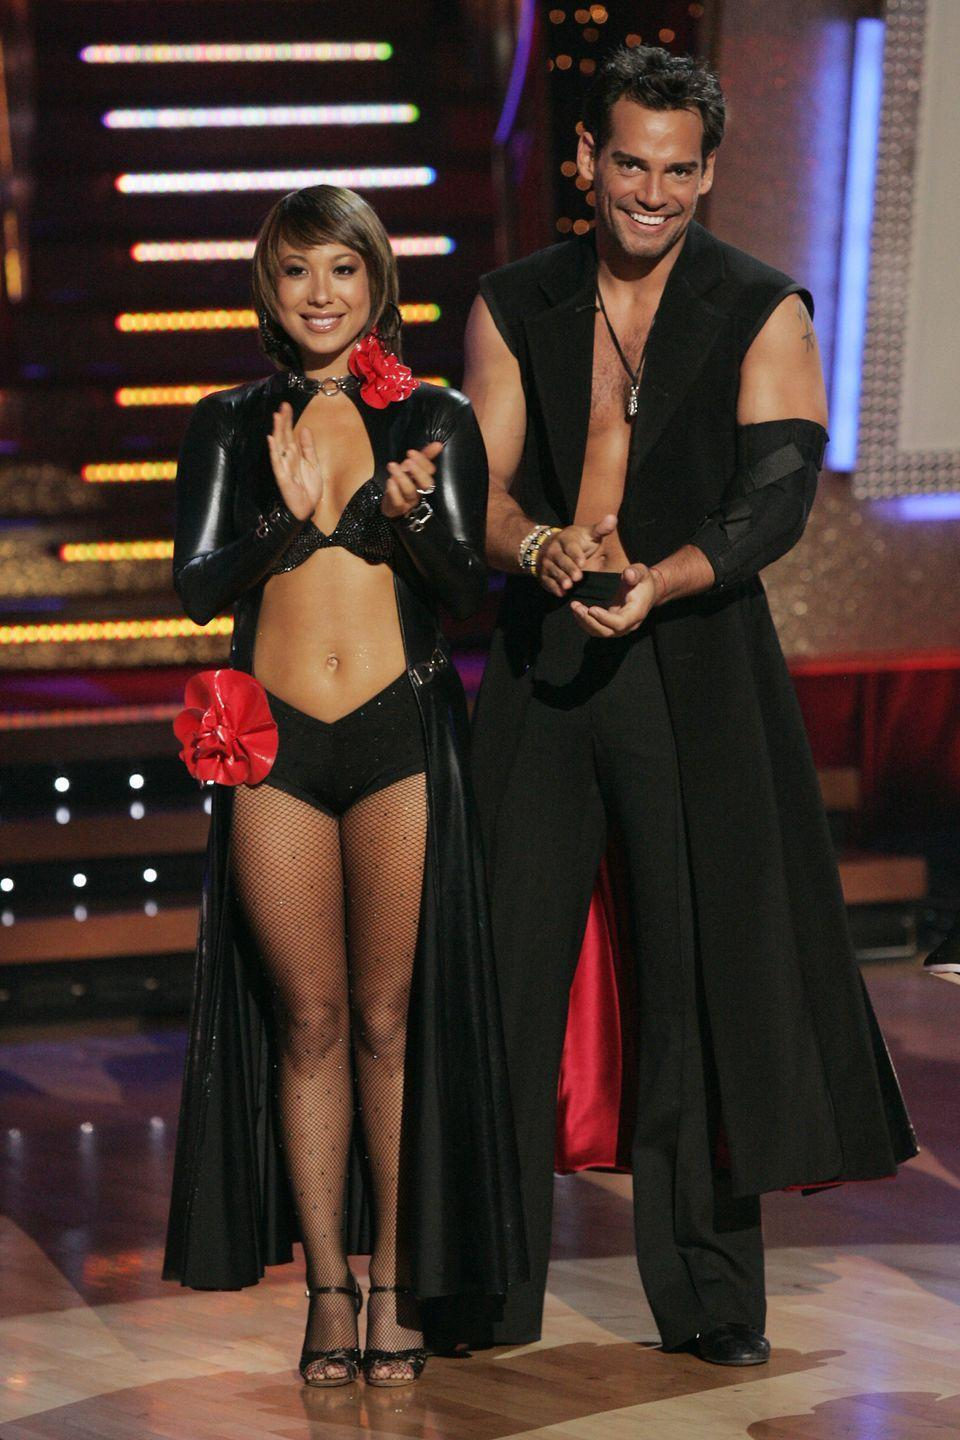 "<p>The soap star had a severe muscle cramp and went to the hospital after performing the samba on the show. ""It hurts,"" he told <em><a href=""https://people.com/tv/dwts-cristian-de-la-fuente-injured-on-dancefloor/"" rel=""nofollow noopener"" target=""_blank"" data-ylk=""slk:People"" class=""link rapid-noclick-resp"">People</a> </em>backstage. ""It hurts the arm and it hurts that I couldn't do it, you know, it's tough."" The Chilean actor also detached one of his tendons from its bone. He was able to dance his way to third place and had surgery after the show to repair it.</p>"